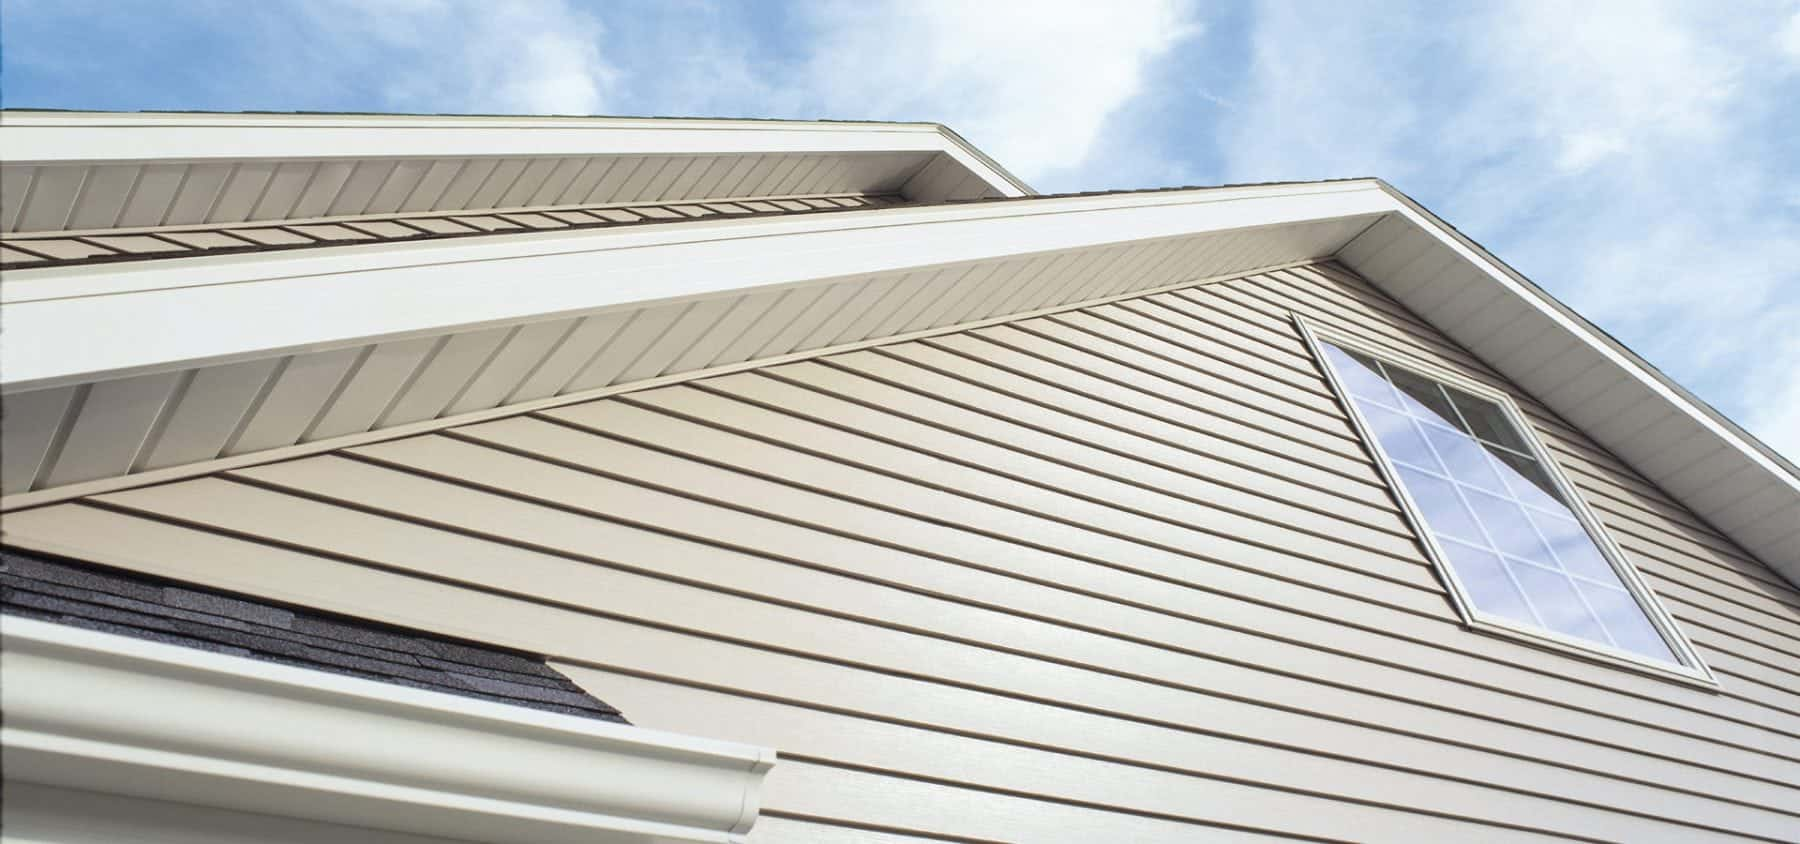 Siding, Vinyl Siding , James Hardie Siding, Steel Siding , Siding Replacement